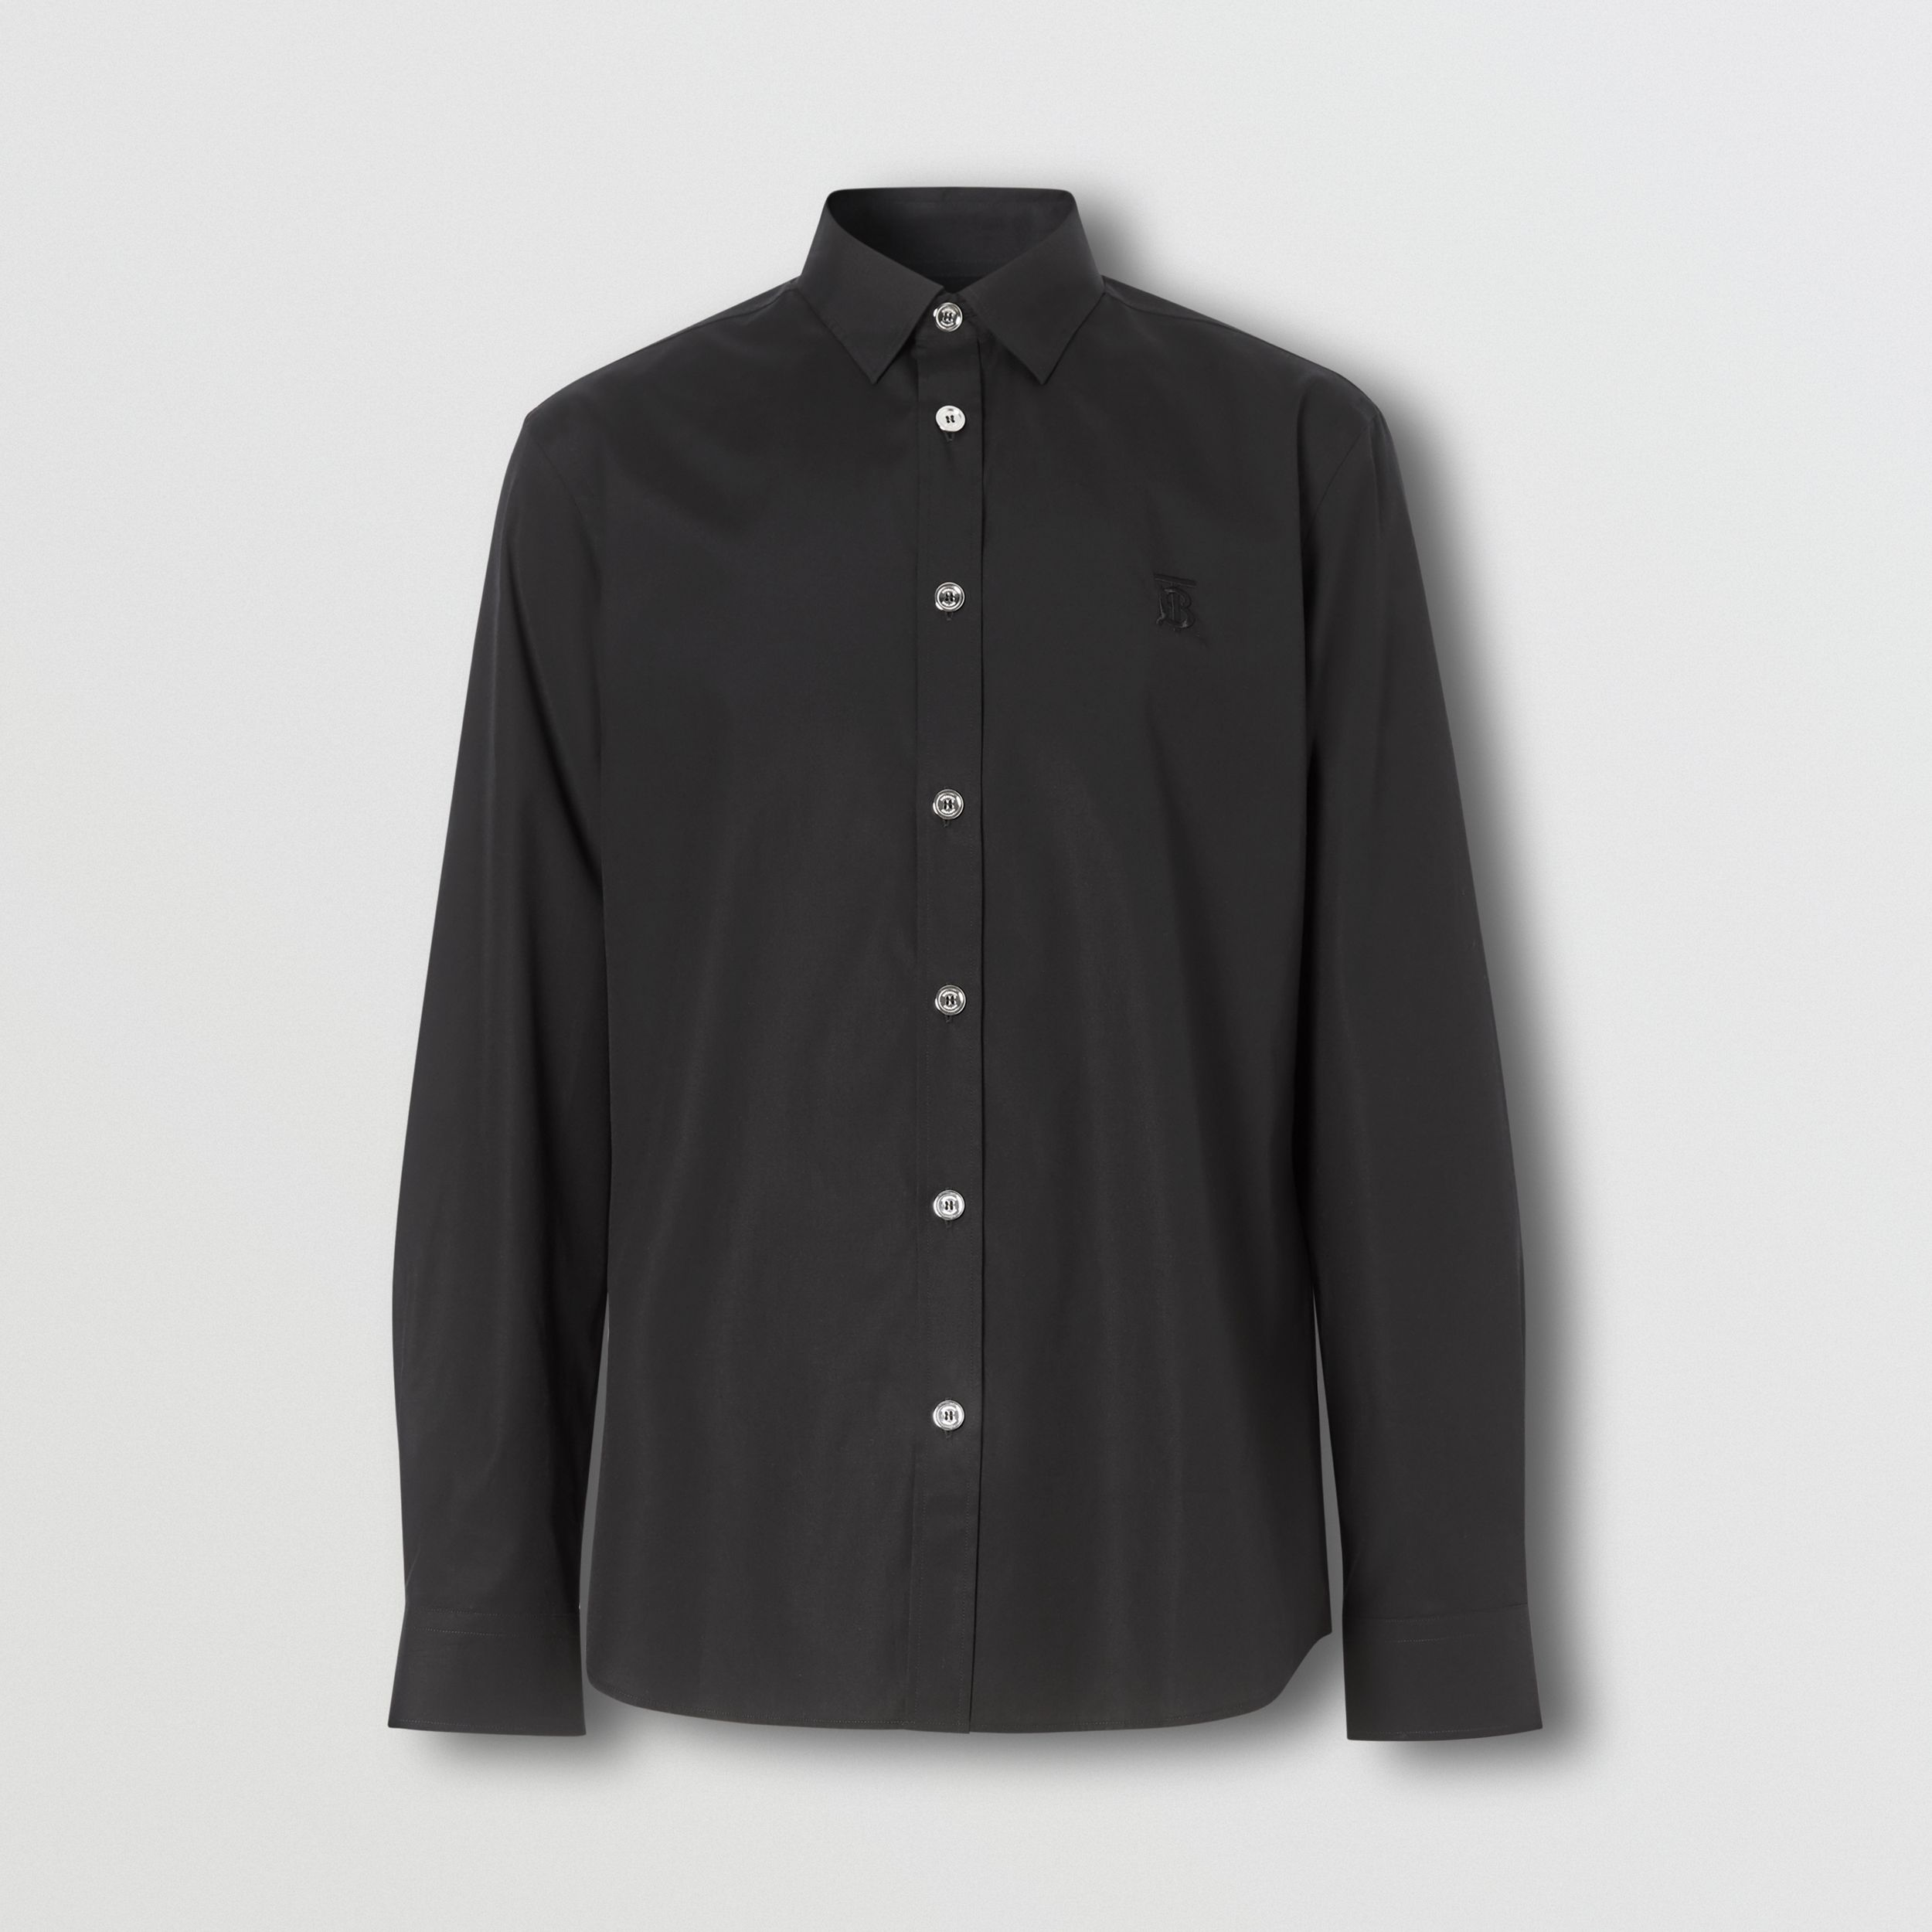 Monogram Motif Stretch Cotton Poplin Shirt in Black - Men | Burberry Australia - 4